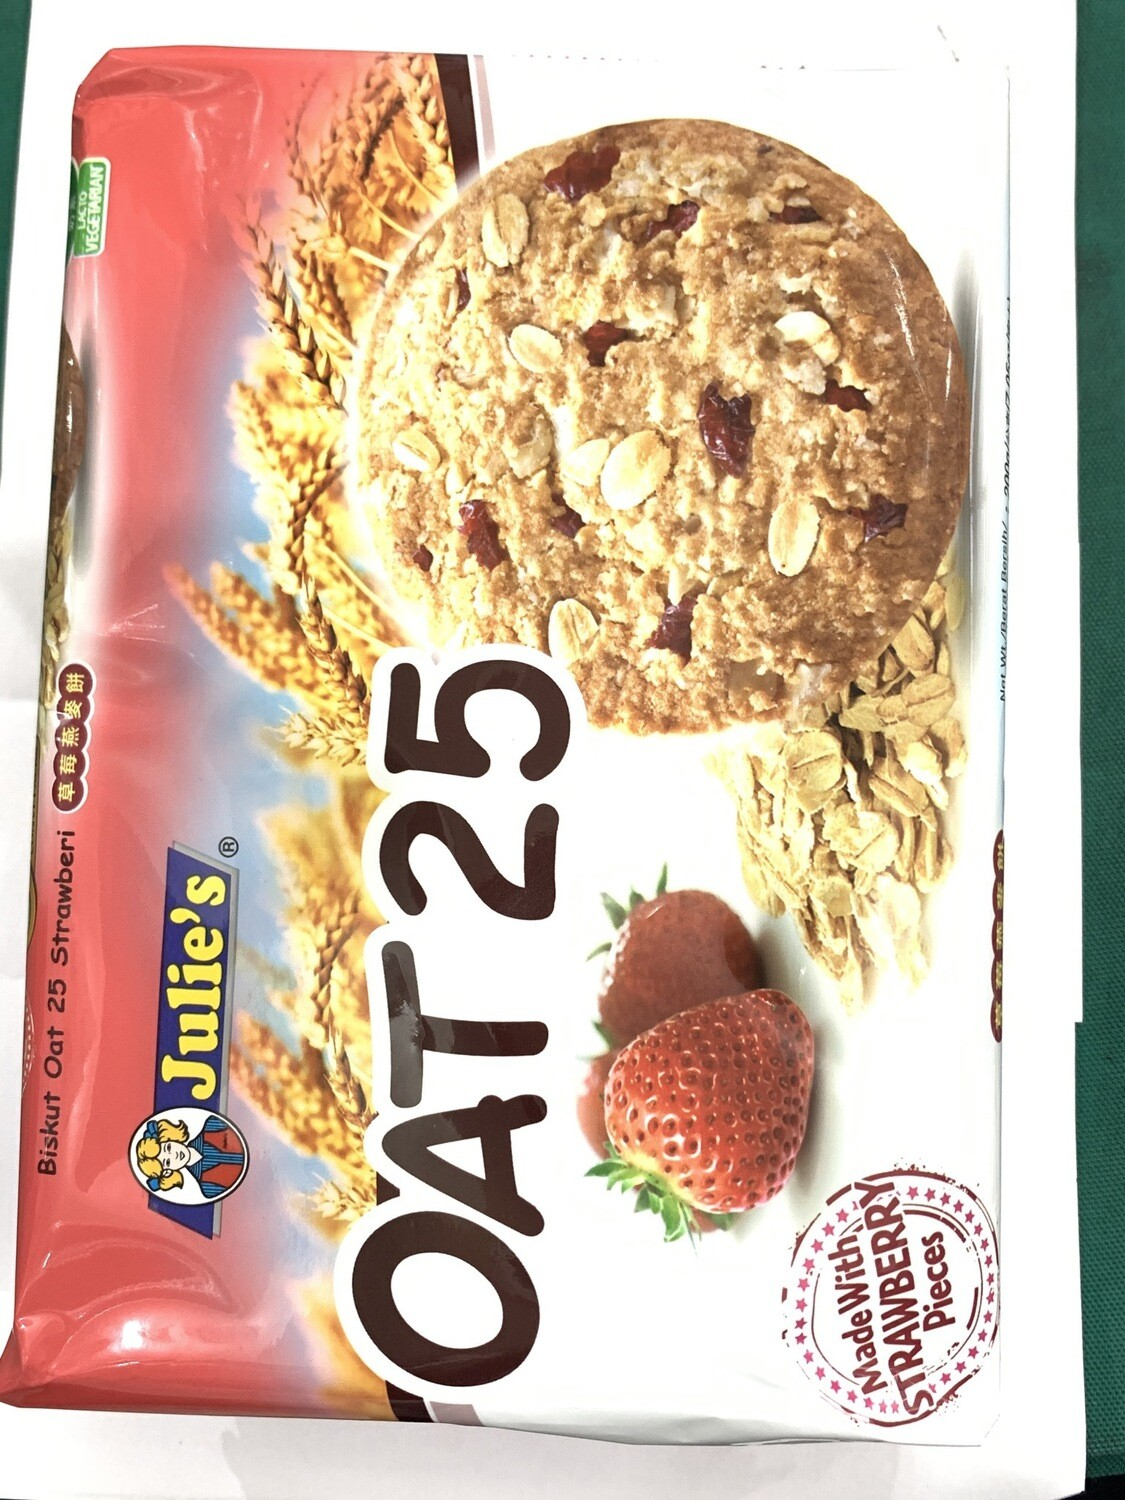 Julies Oat 25 Strawberry Cookies 200g